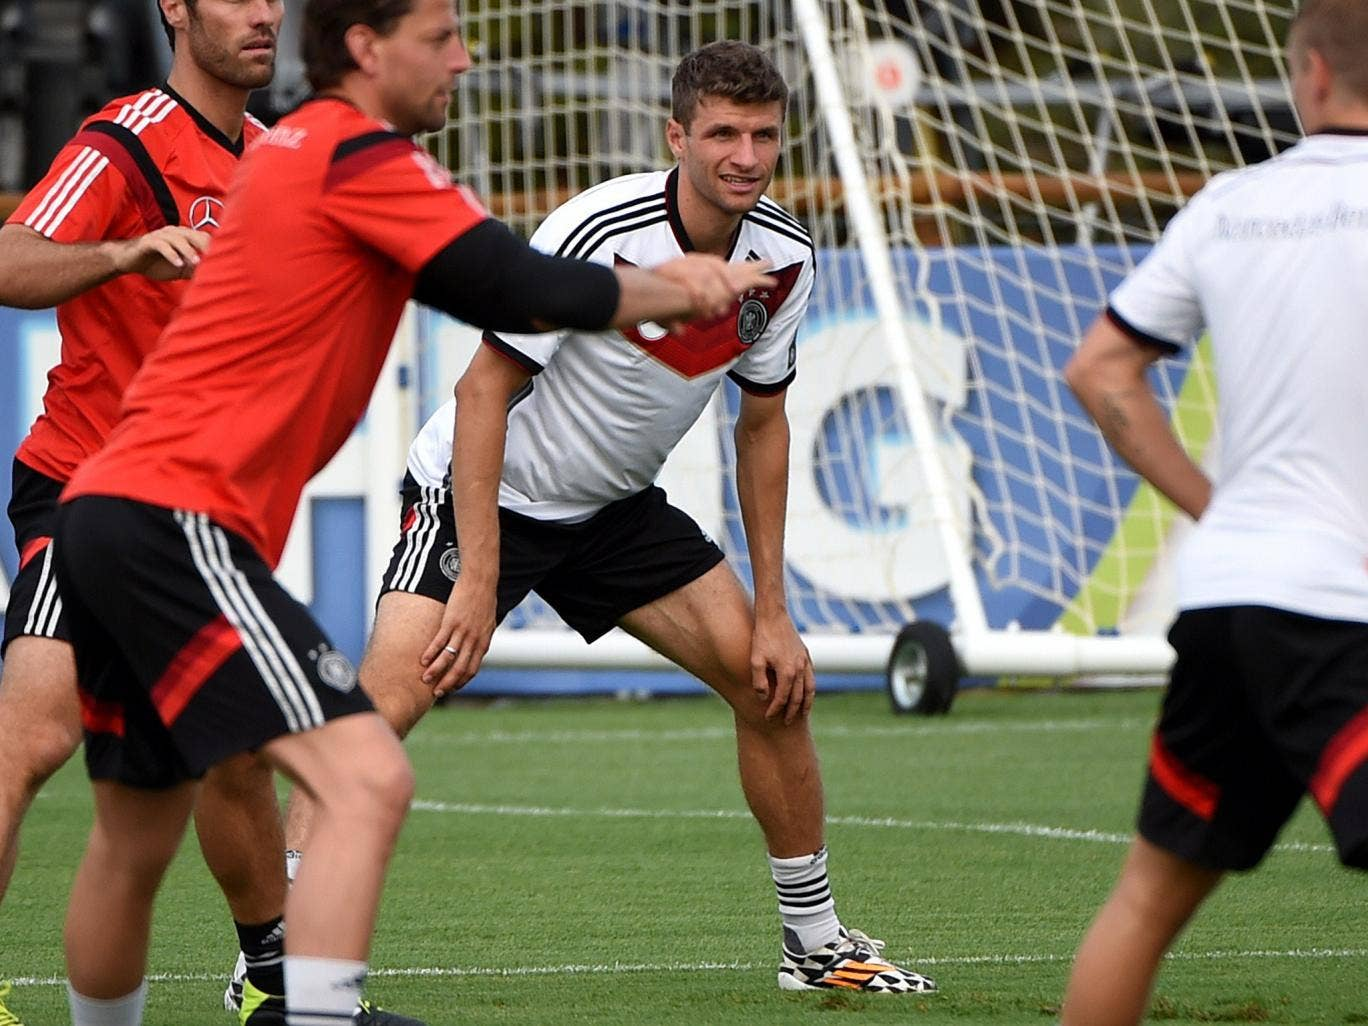 Thomas Muller trains with Germany ahead of the World Cup final